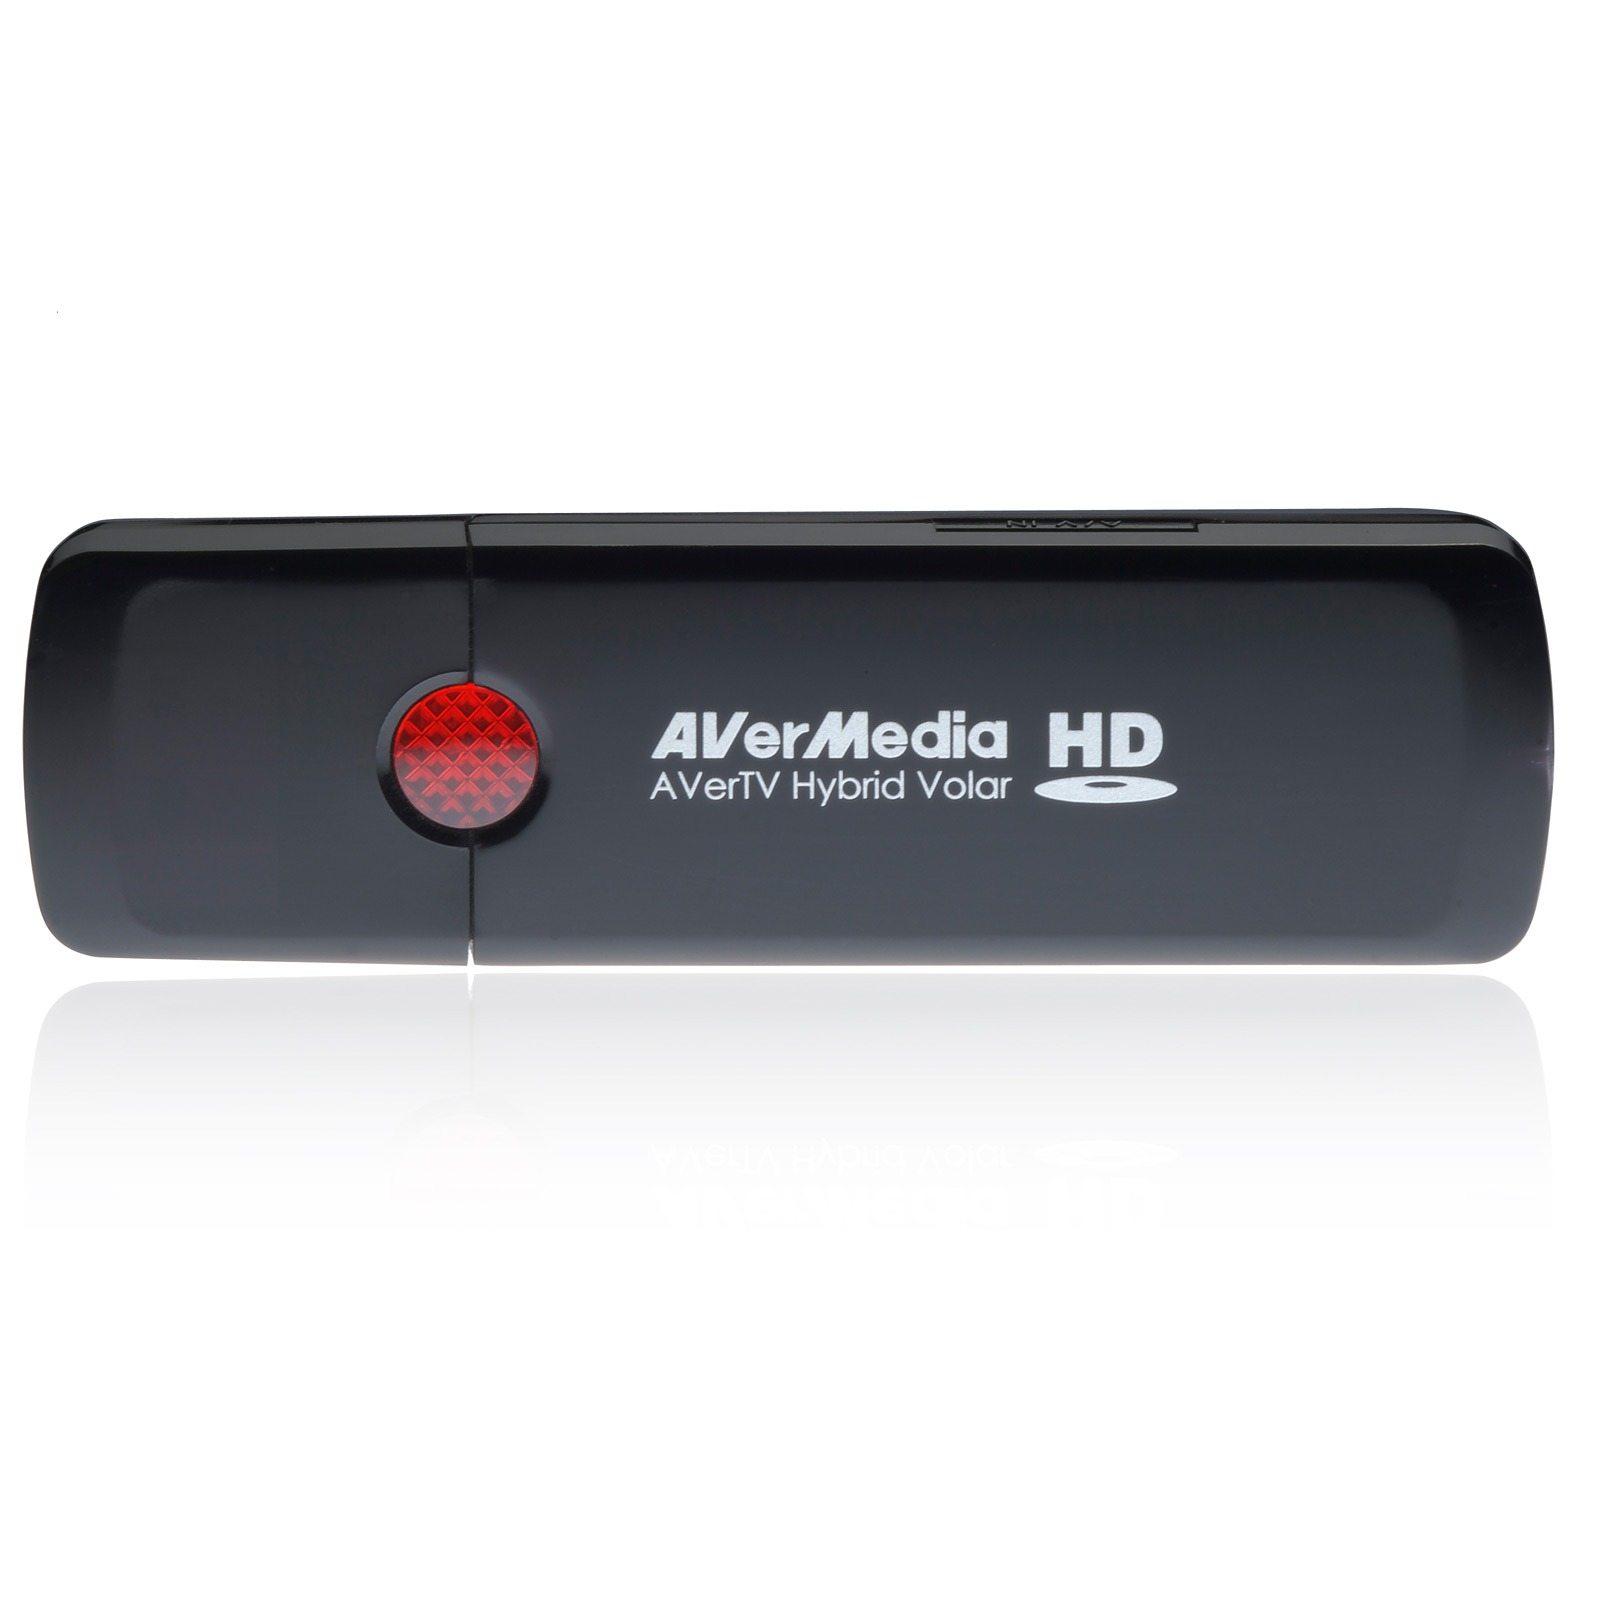 avermedia avertv hybrid volar hd h830 achat vente tuner tnt usb sur. Black Bedroom Furniture Sets. Home Design Ideas